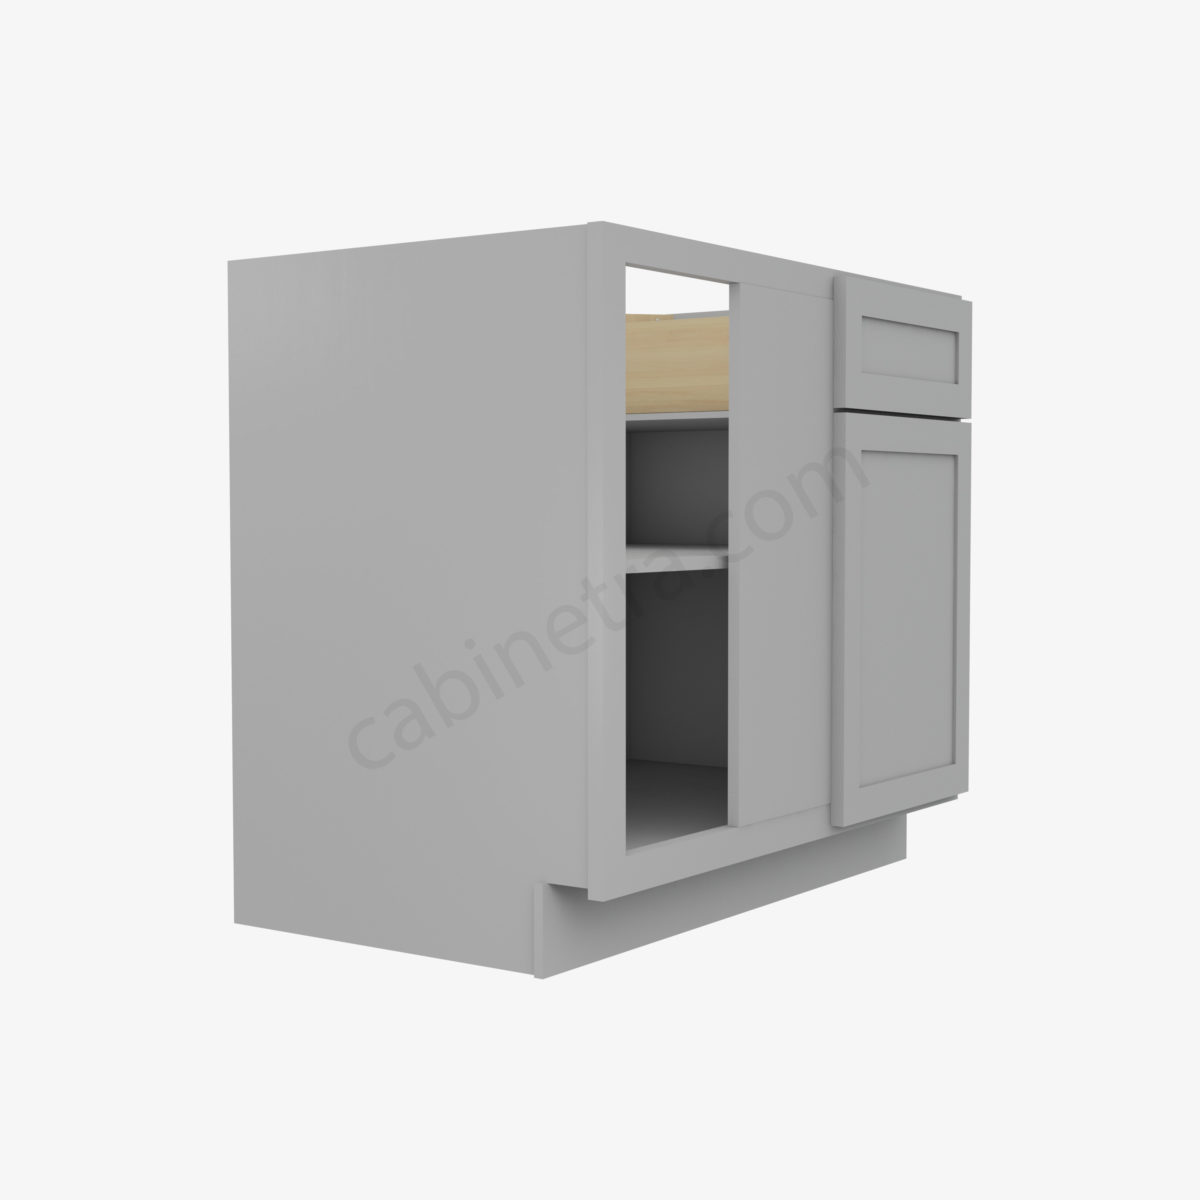 AB BBLC39 42 36W 4 Forevermark Lait Gray Shaker Cabinetra scaled